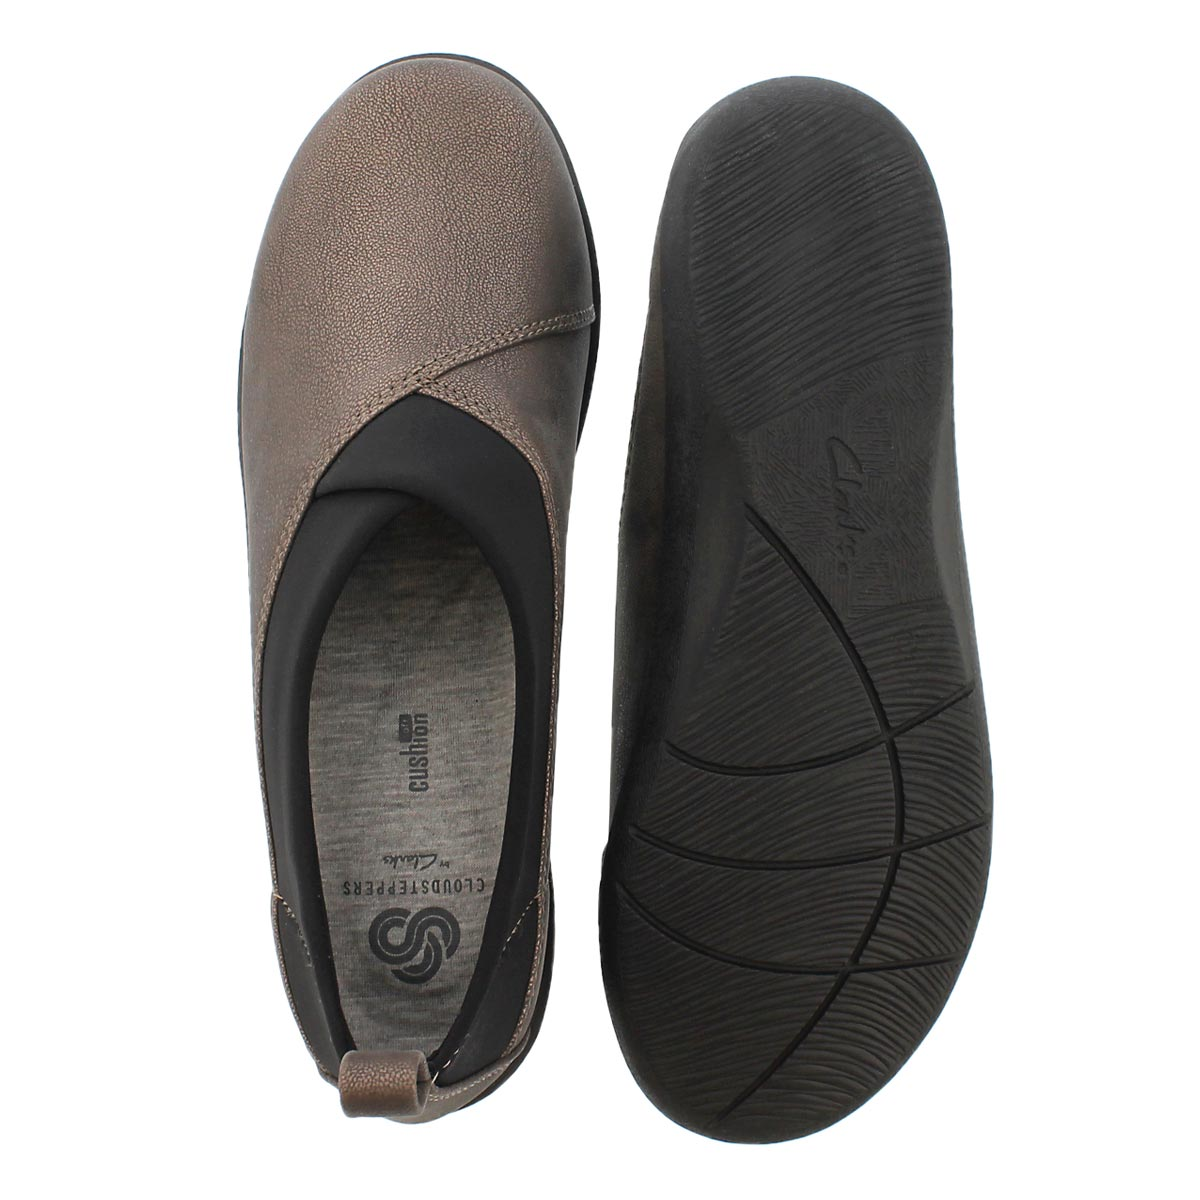 Lds Sillian Greer pewter casual slip on